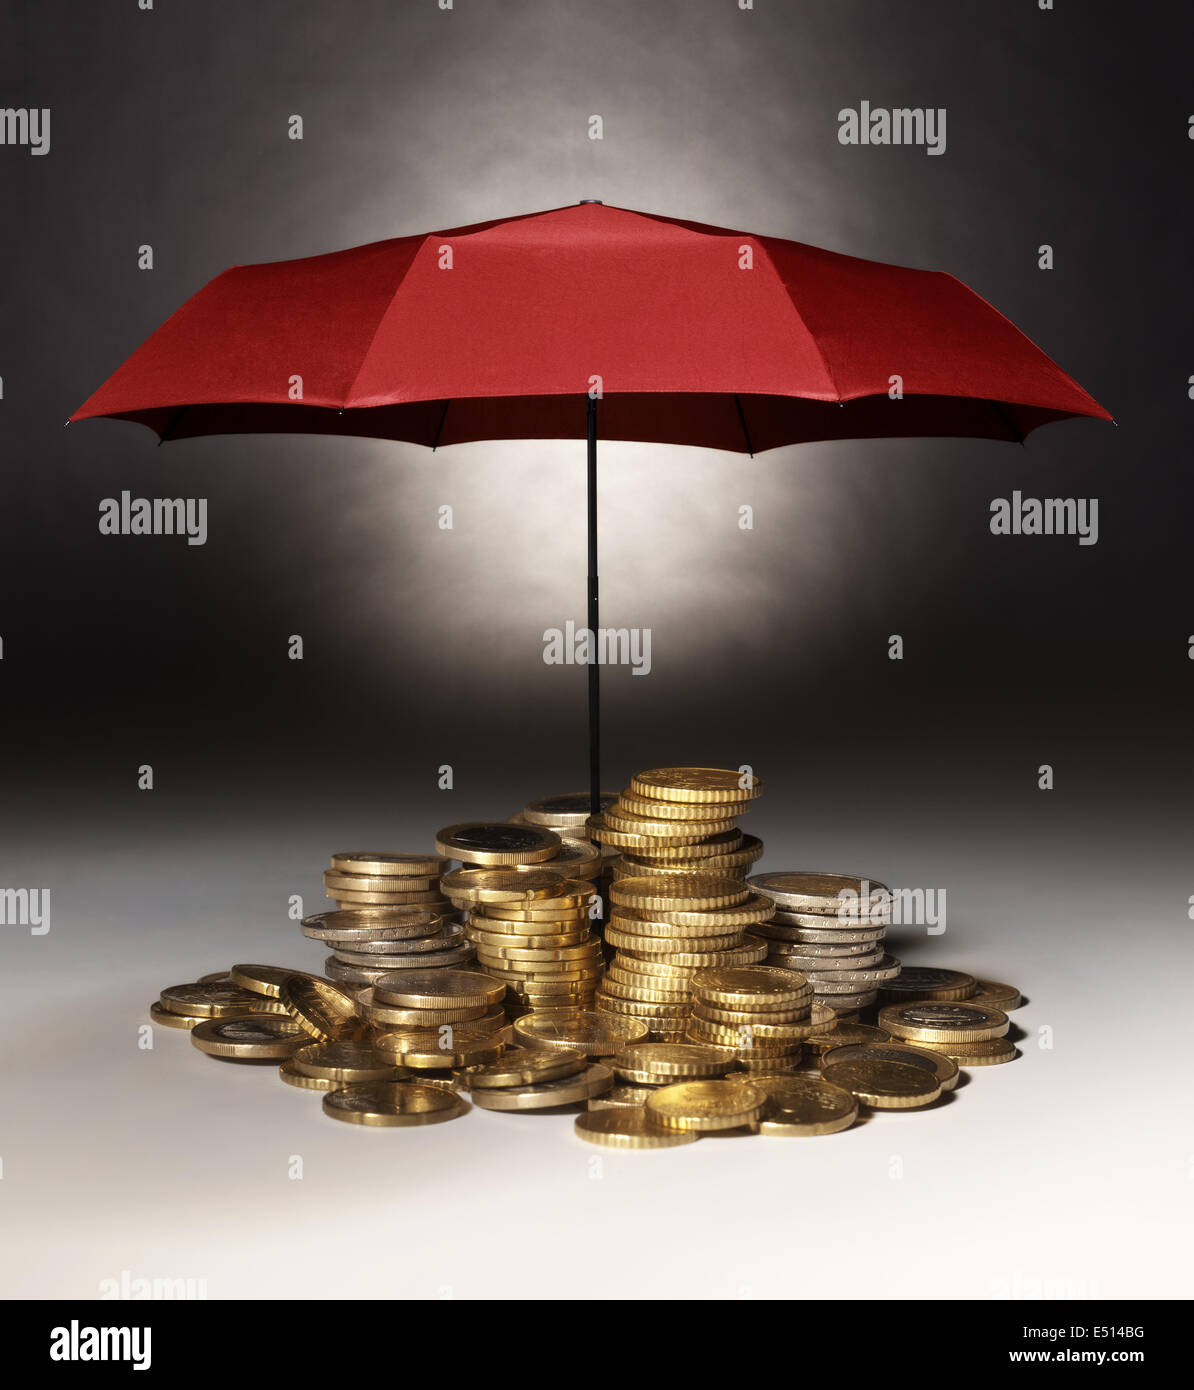 Coins with red protective umbrella - Stock Image